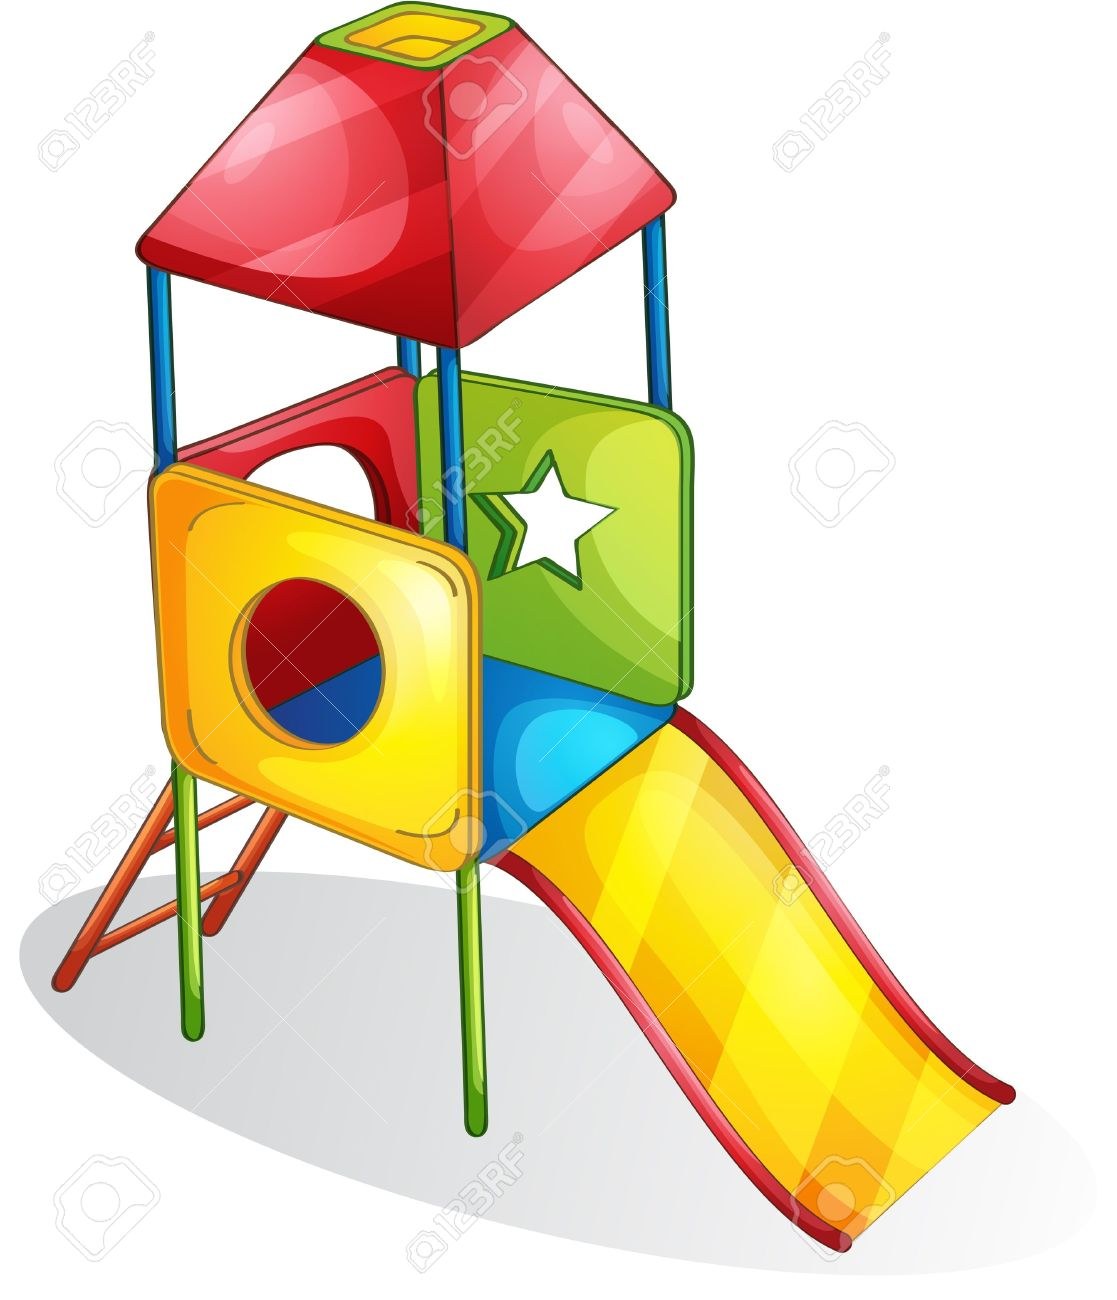 Illustration Of A Colorful Slide Royalty Free Cliparts, Vectors.